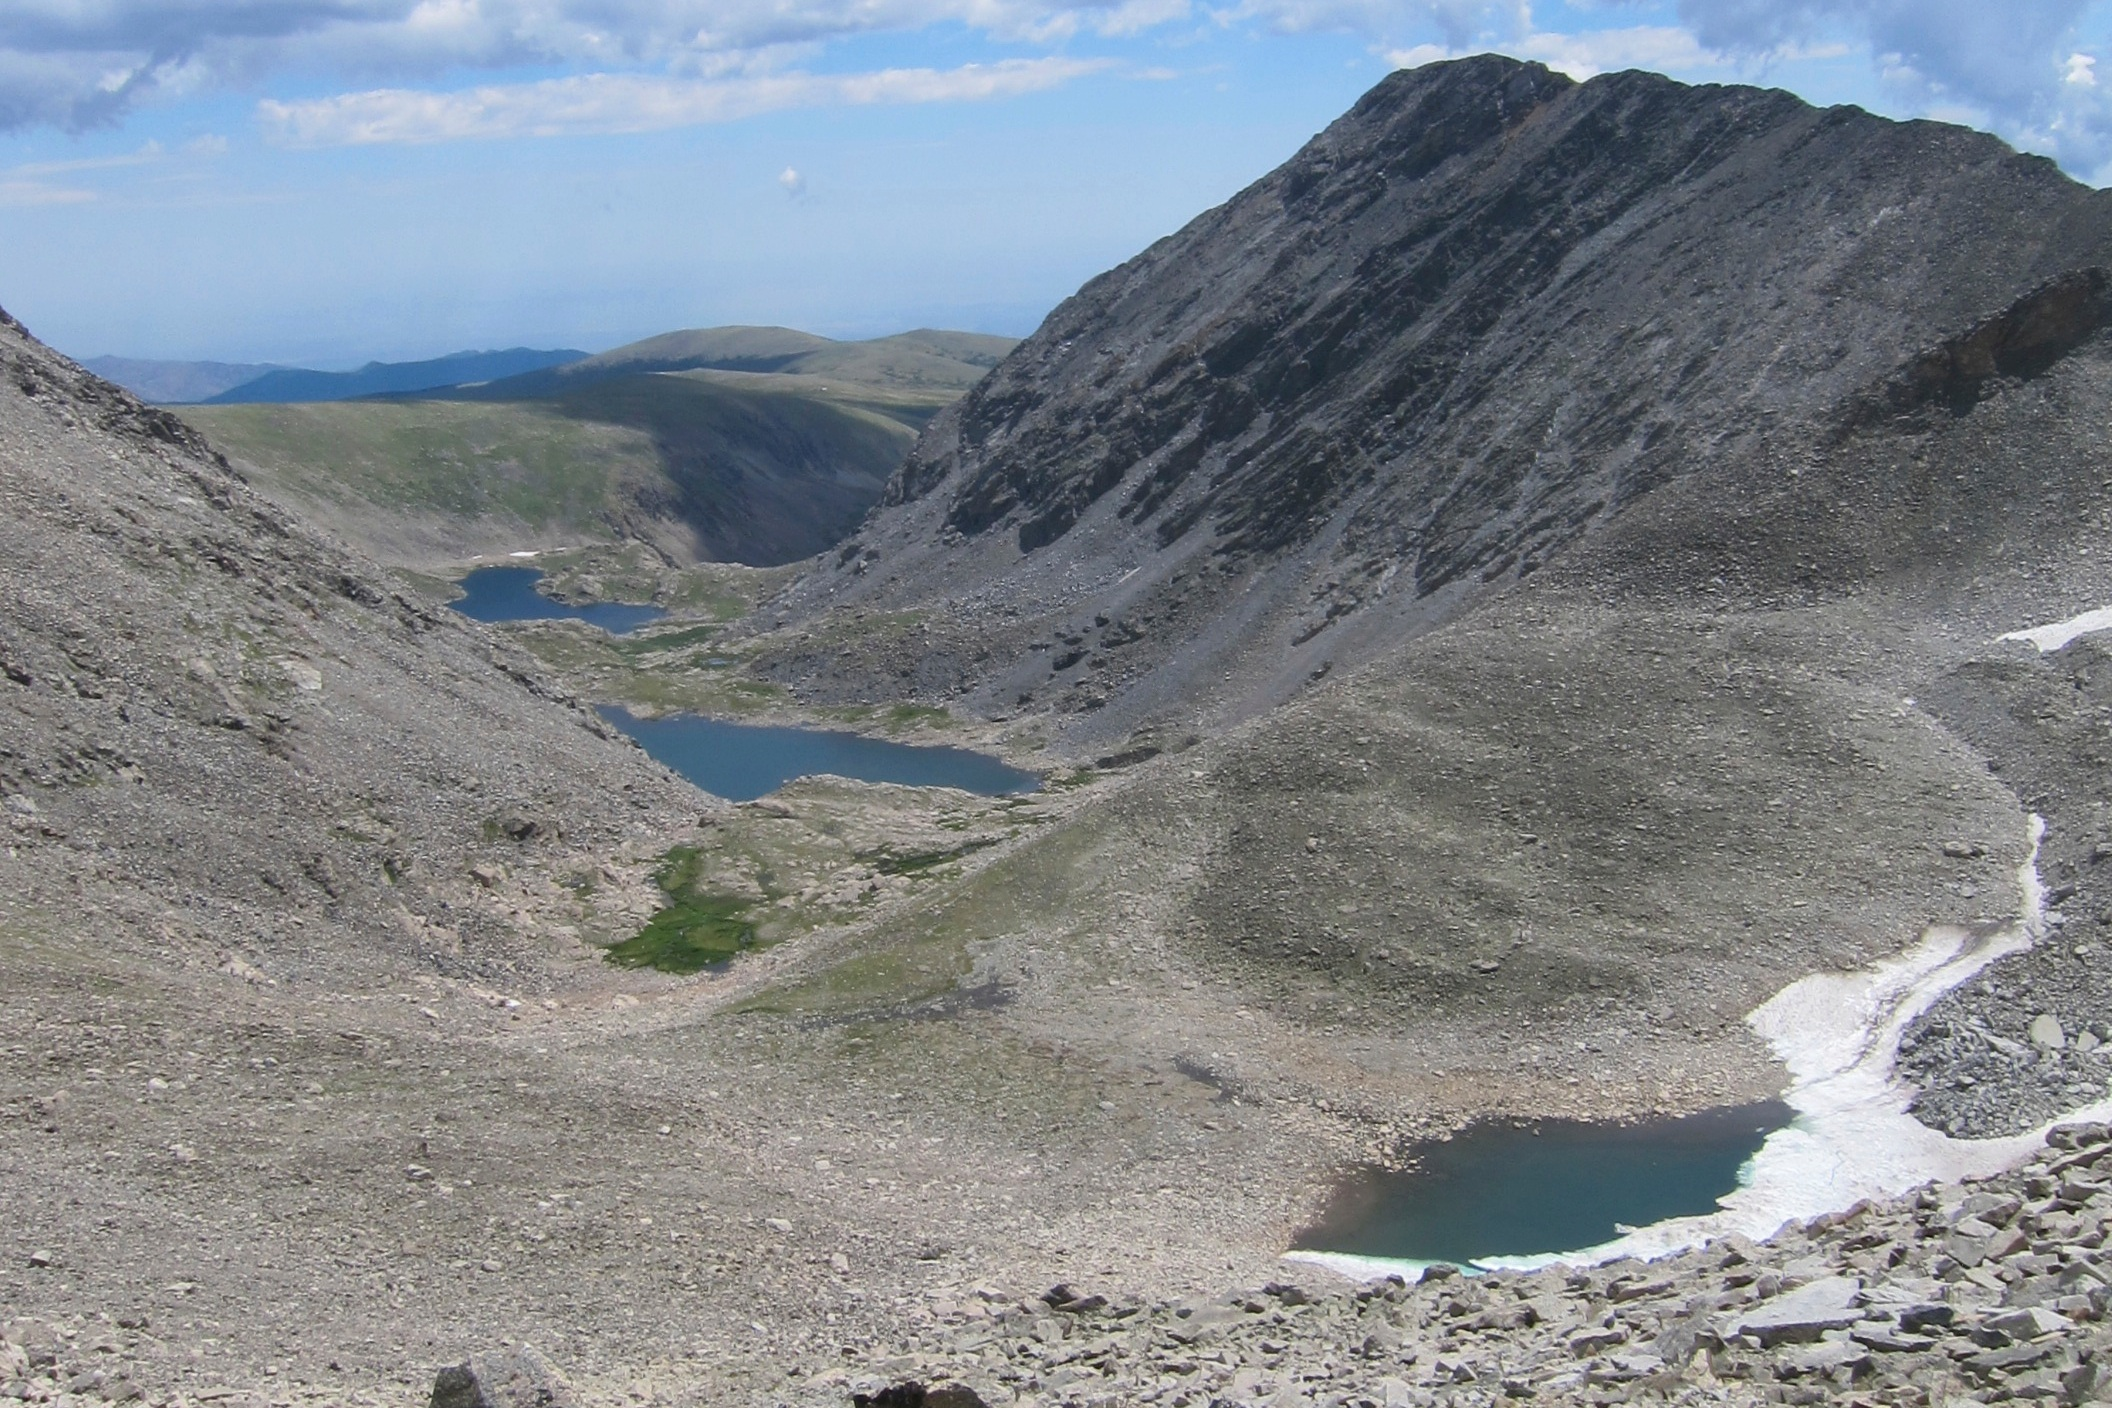 Green lakes valley - Mean Elevation: 3745 mThe continental, high mountain climate of the GLV has been recorded continuously at the D-1 meteorological station on Niwot Ridge for over 60 years and for shorter periods on the valley floor. South-facing slopes are warmer than north-facing slopes, which are underlain by discontinuous permafrost. Almost 80% of the approximately 1000 mm of recorded annual precipitation falls as snow.